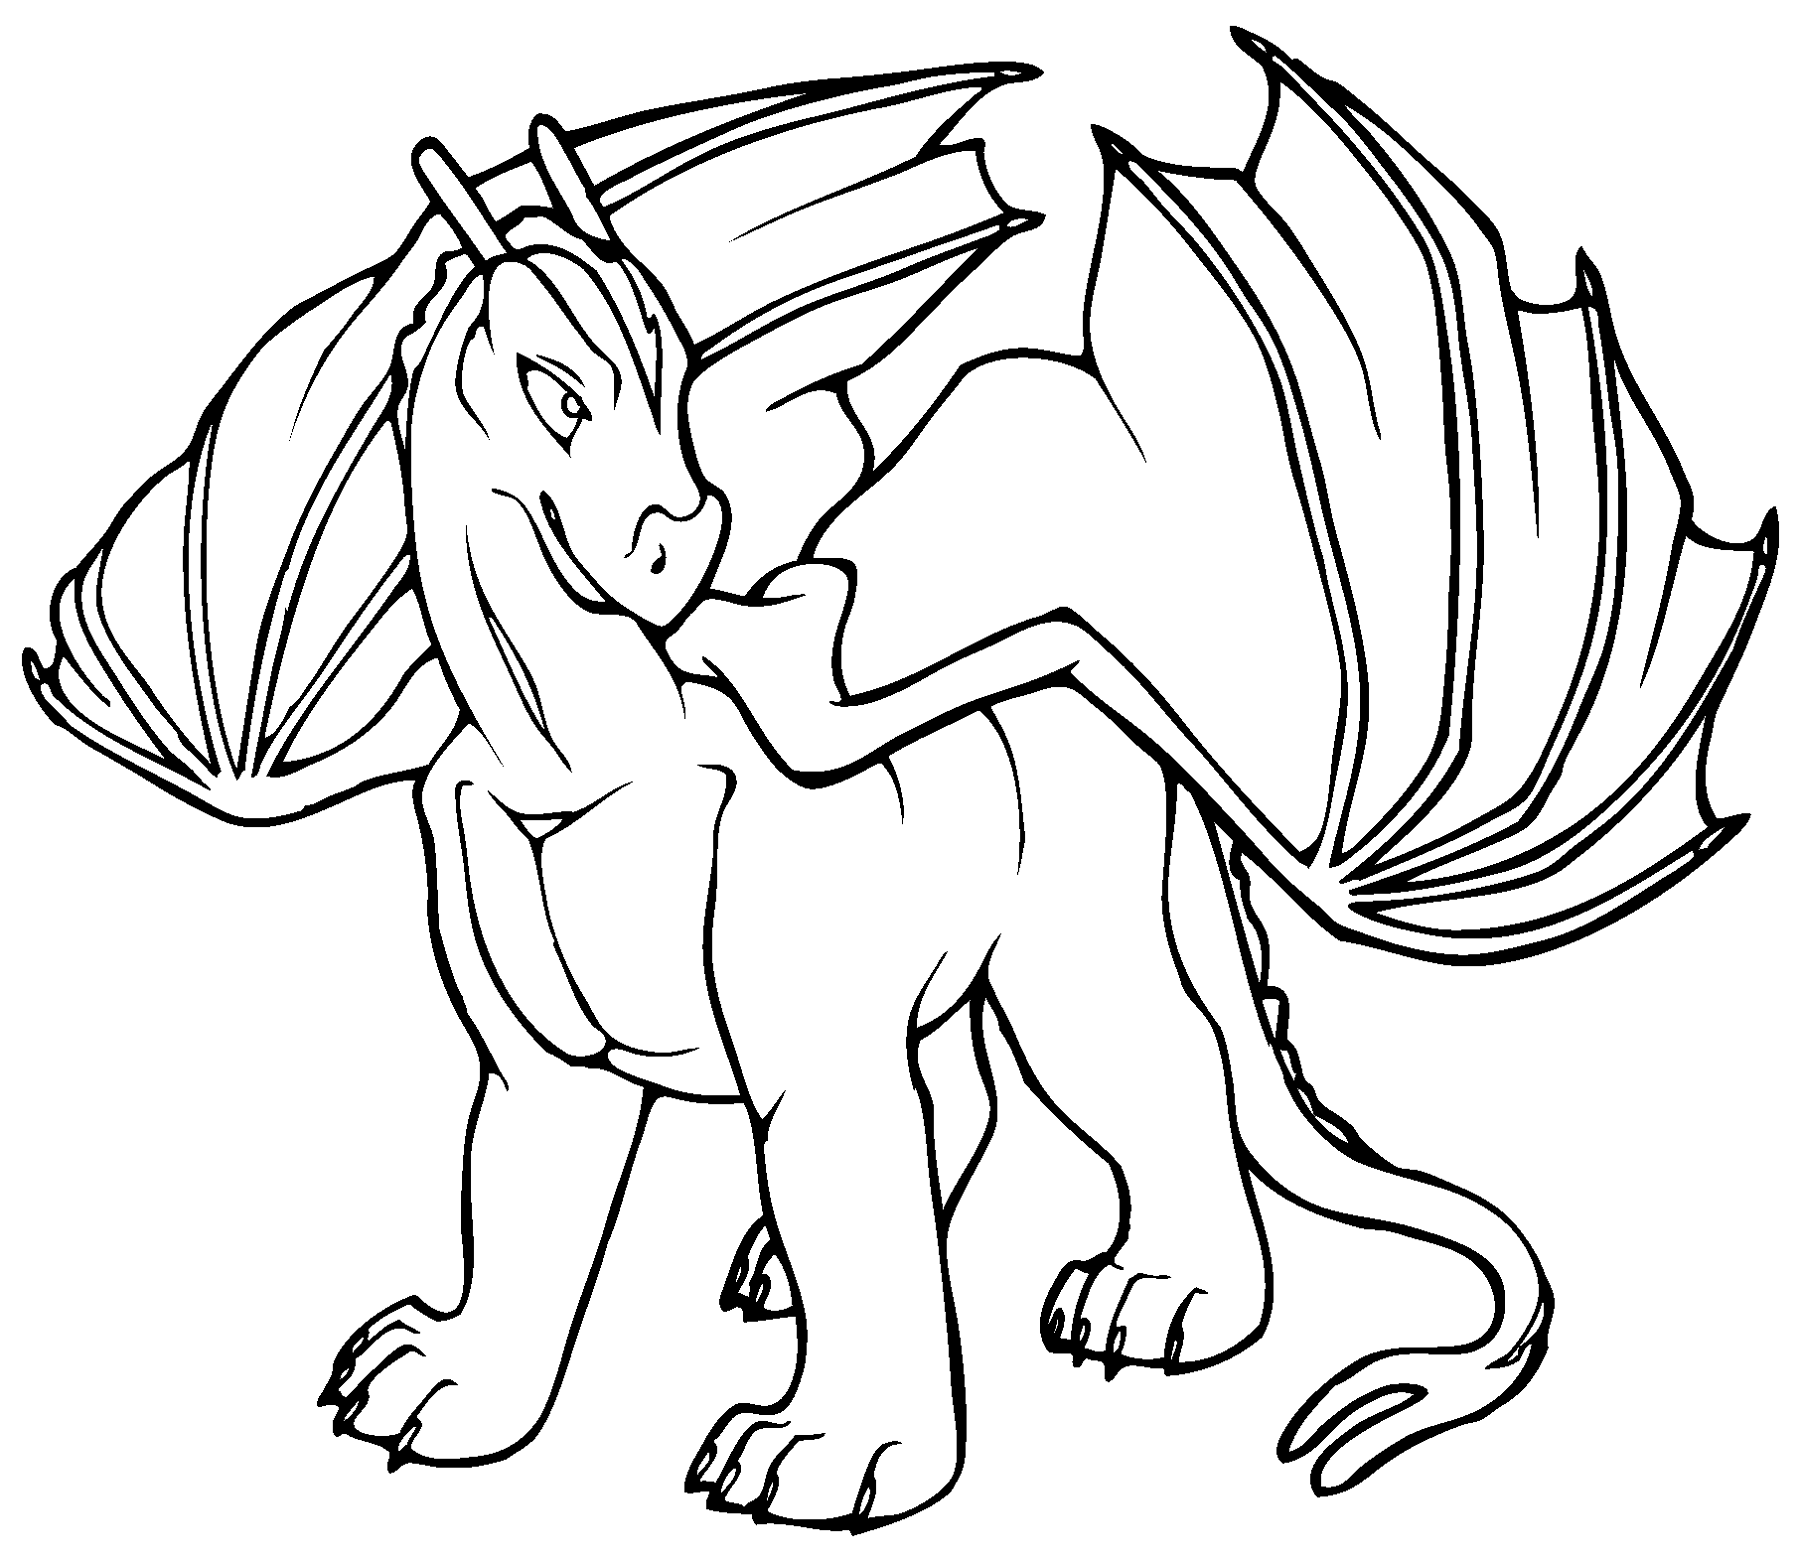 dragon colouring pictures dragon coloring pages for adults best coloring pages for dragon colouring pictures